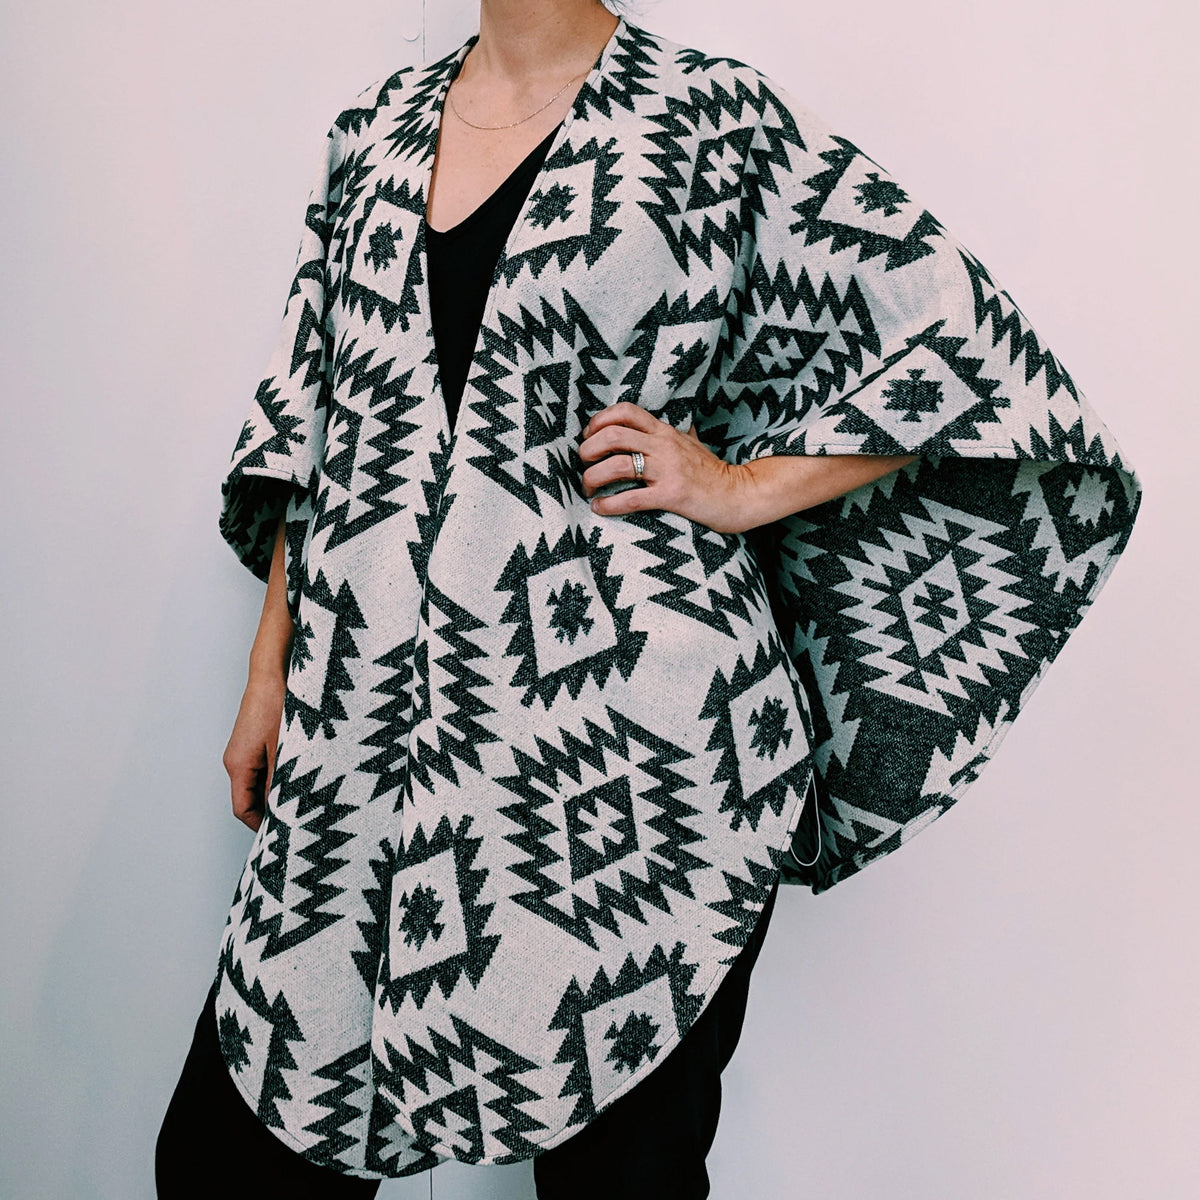 Snowy Owl - Shawl / Poncho for Women in Wool - Sold by Chic & Basta